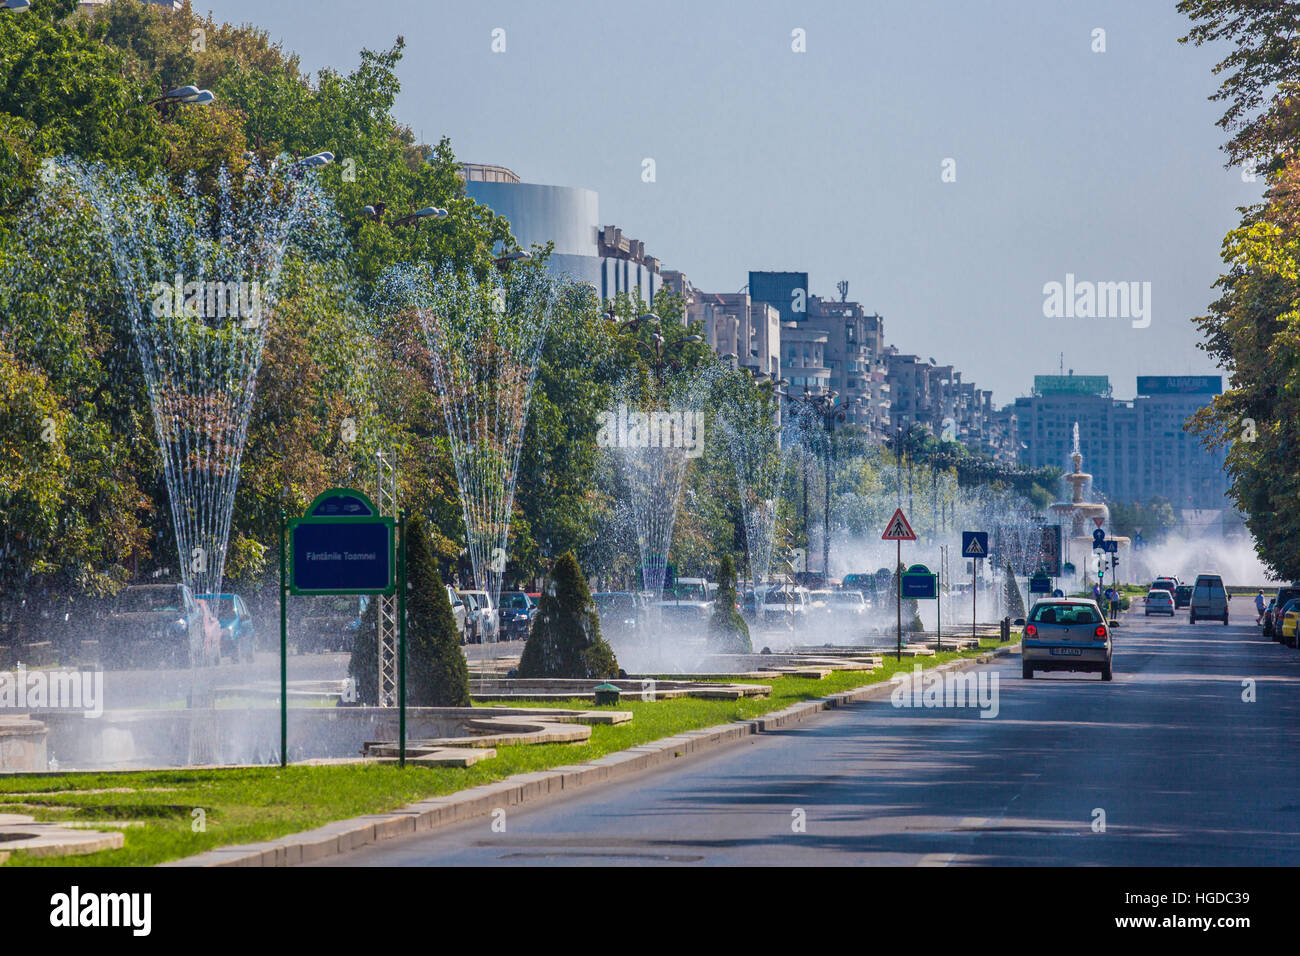 Romania, Bucharest City, Unirii Boulevard - Stock Image